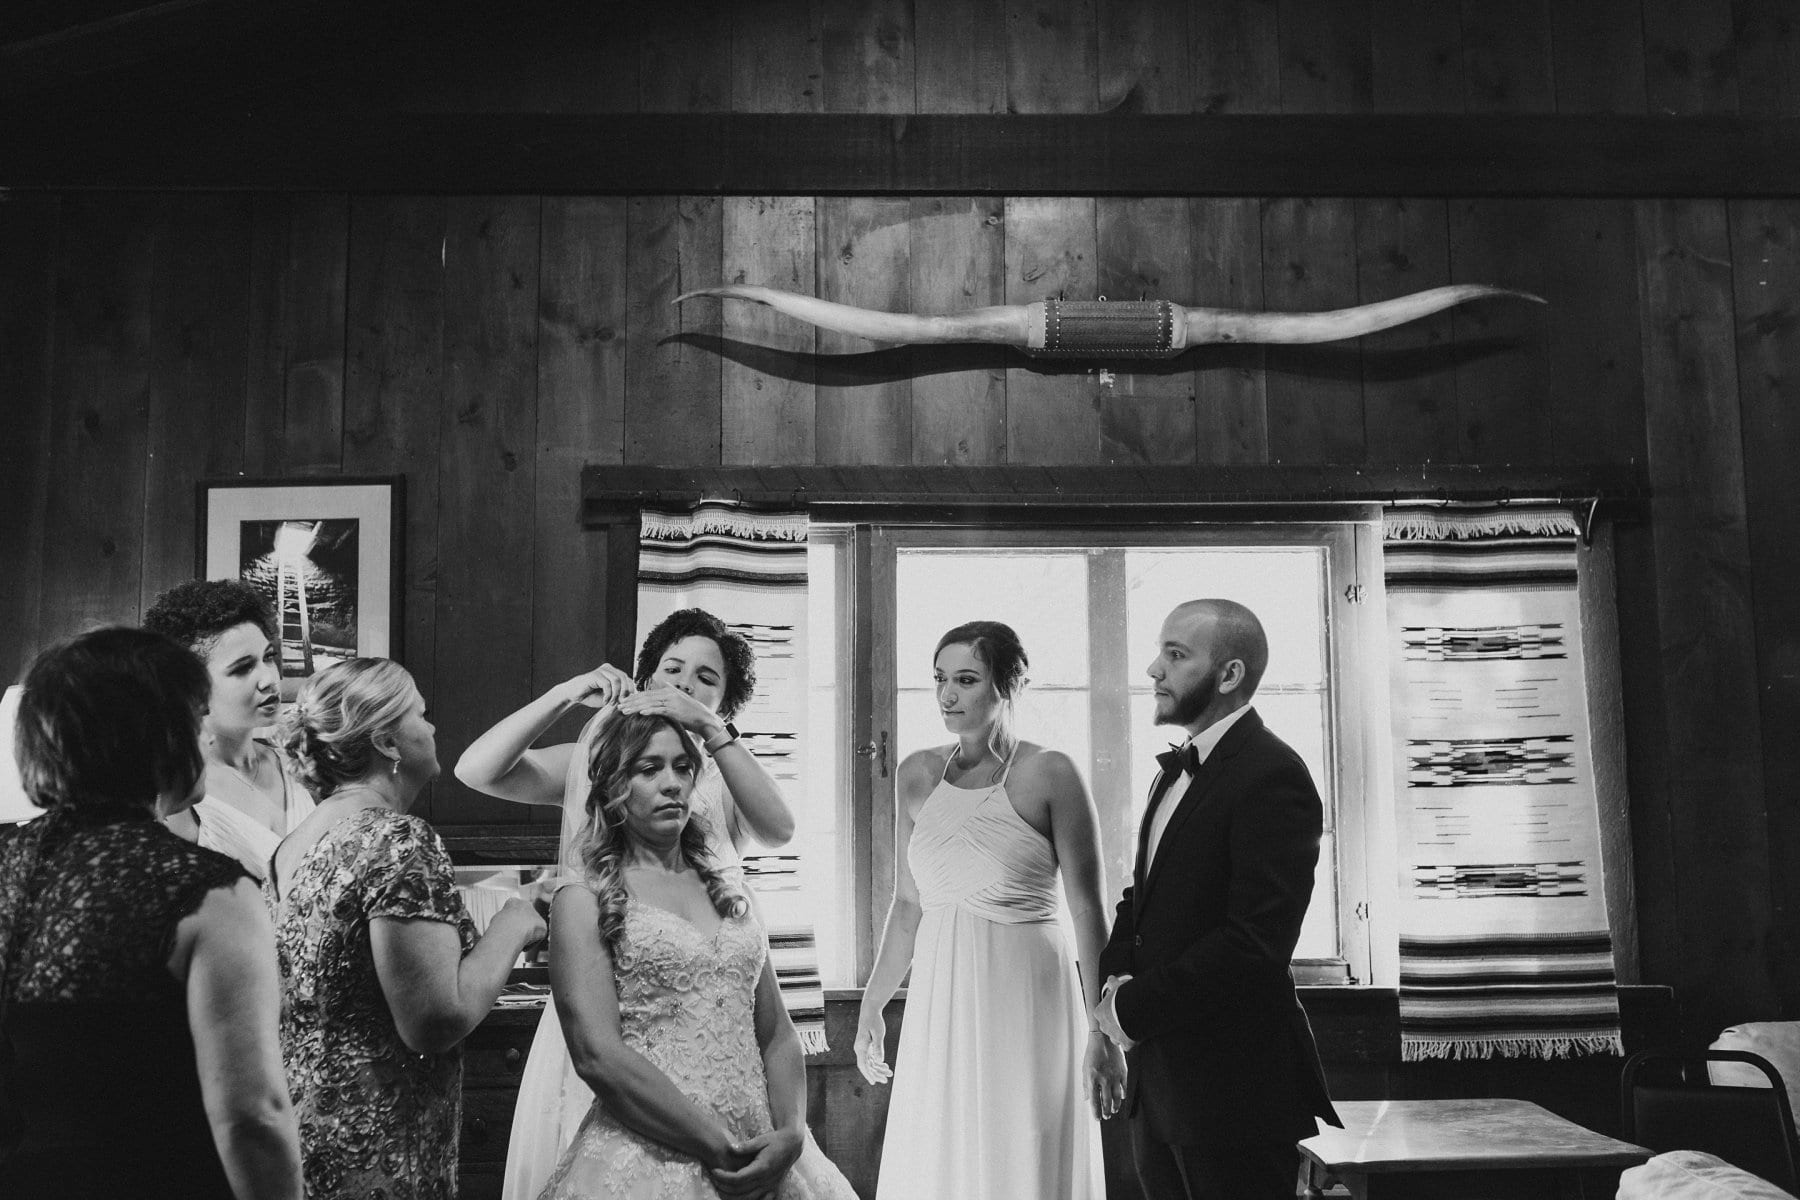 documentary wedding photographer Saguaro Lake Guest Ranch